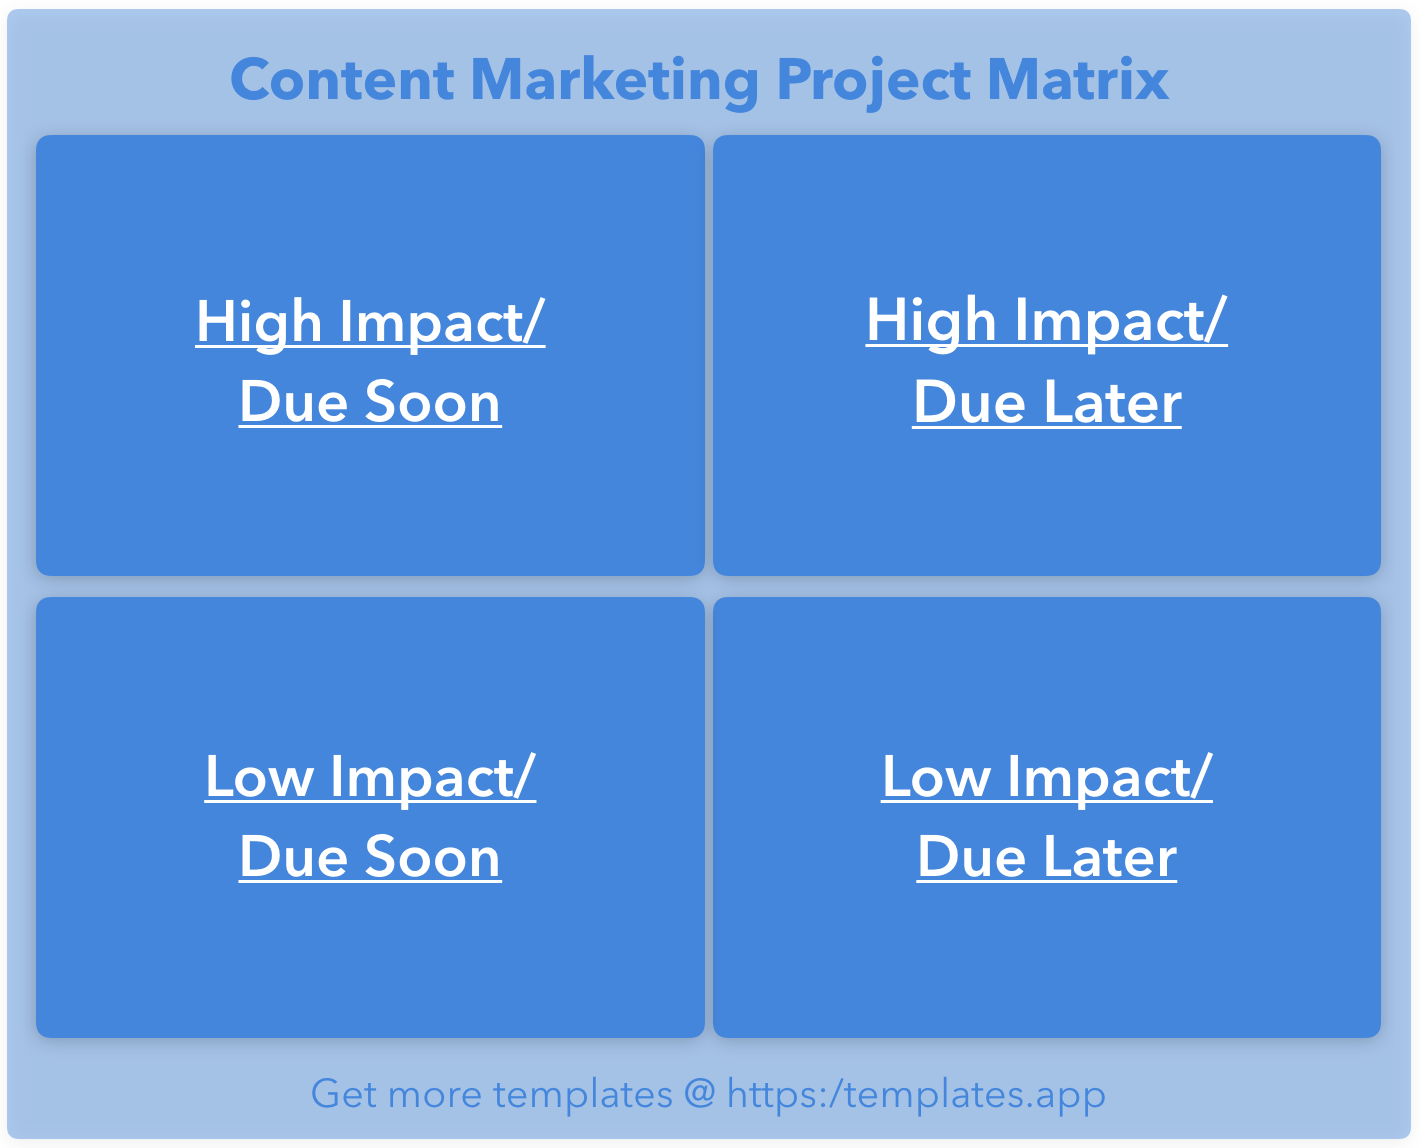 Content Marketing Project Matrix by Template.app